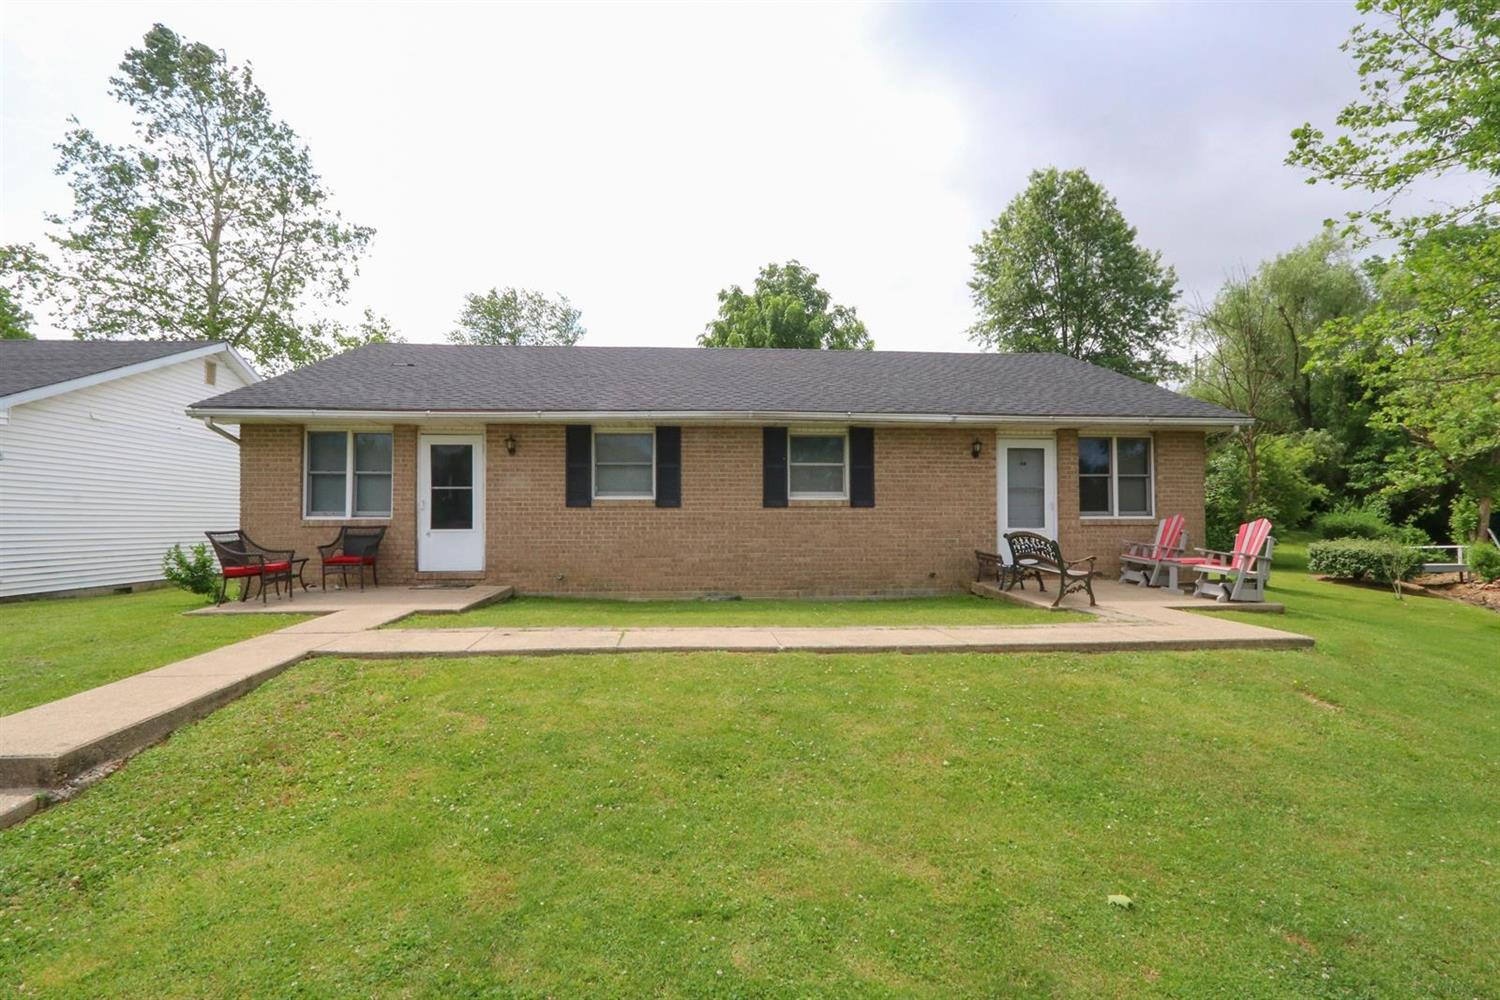 Property for sale at 505 Bourbon Street, Blanchester,  Ohio 45107